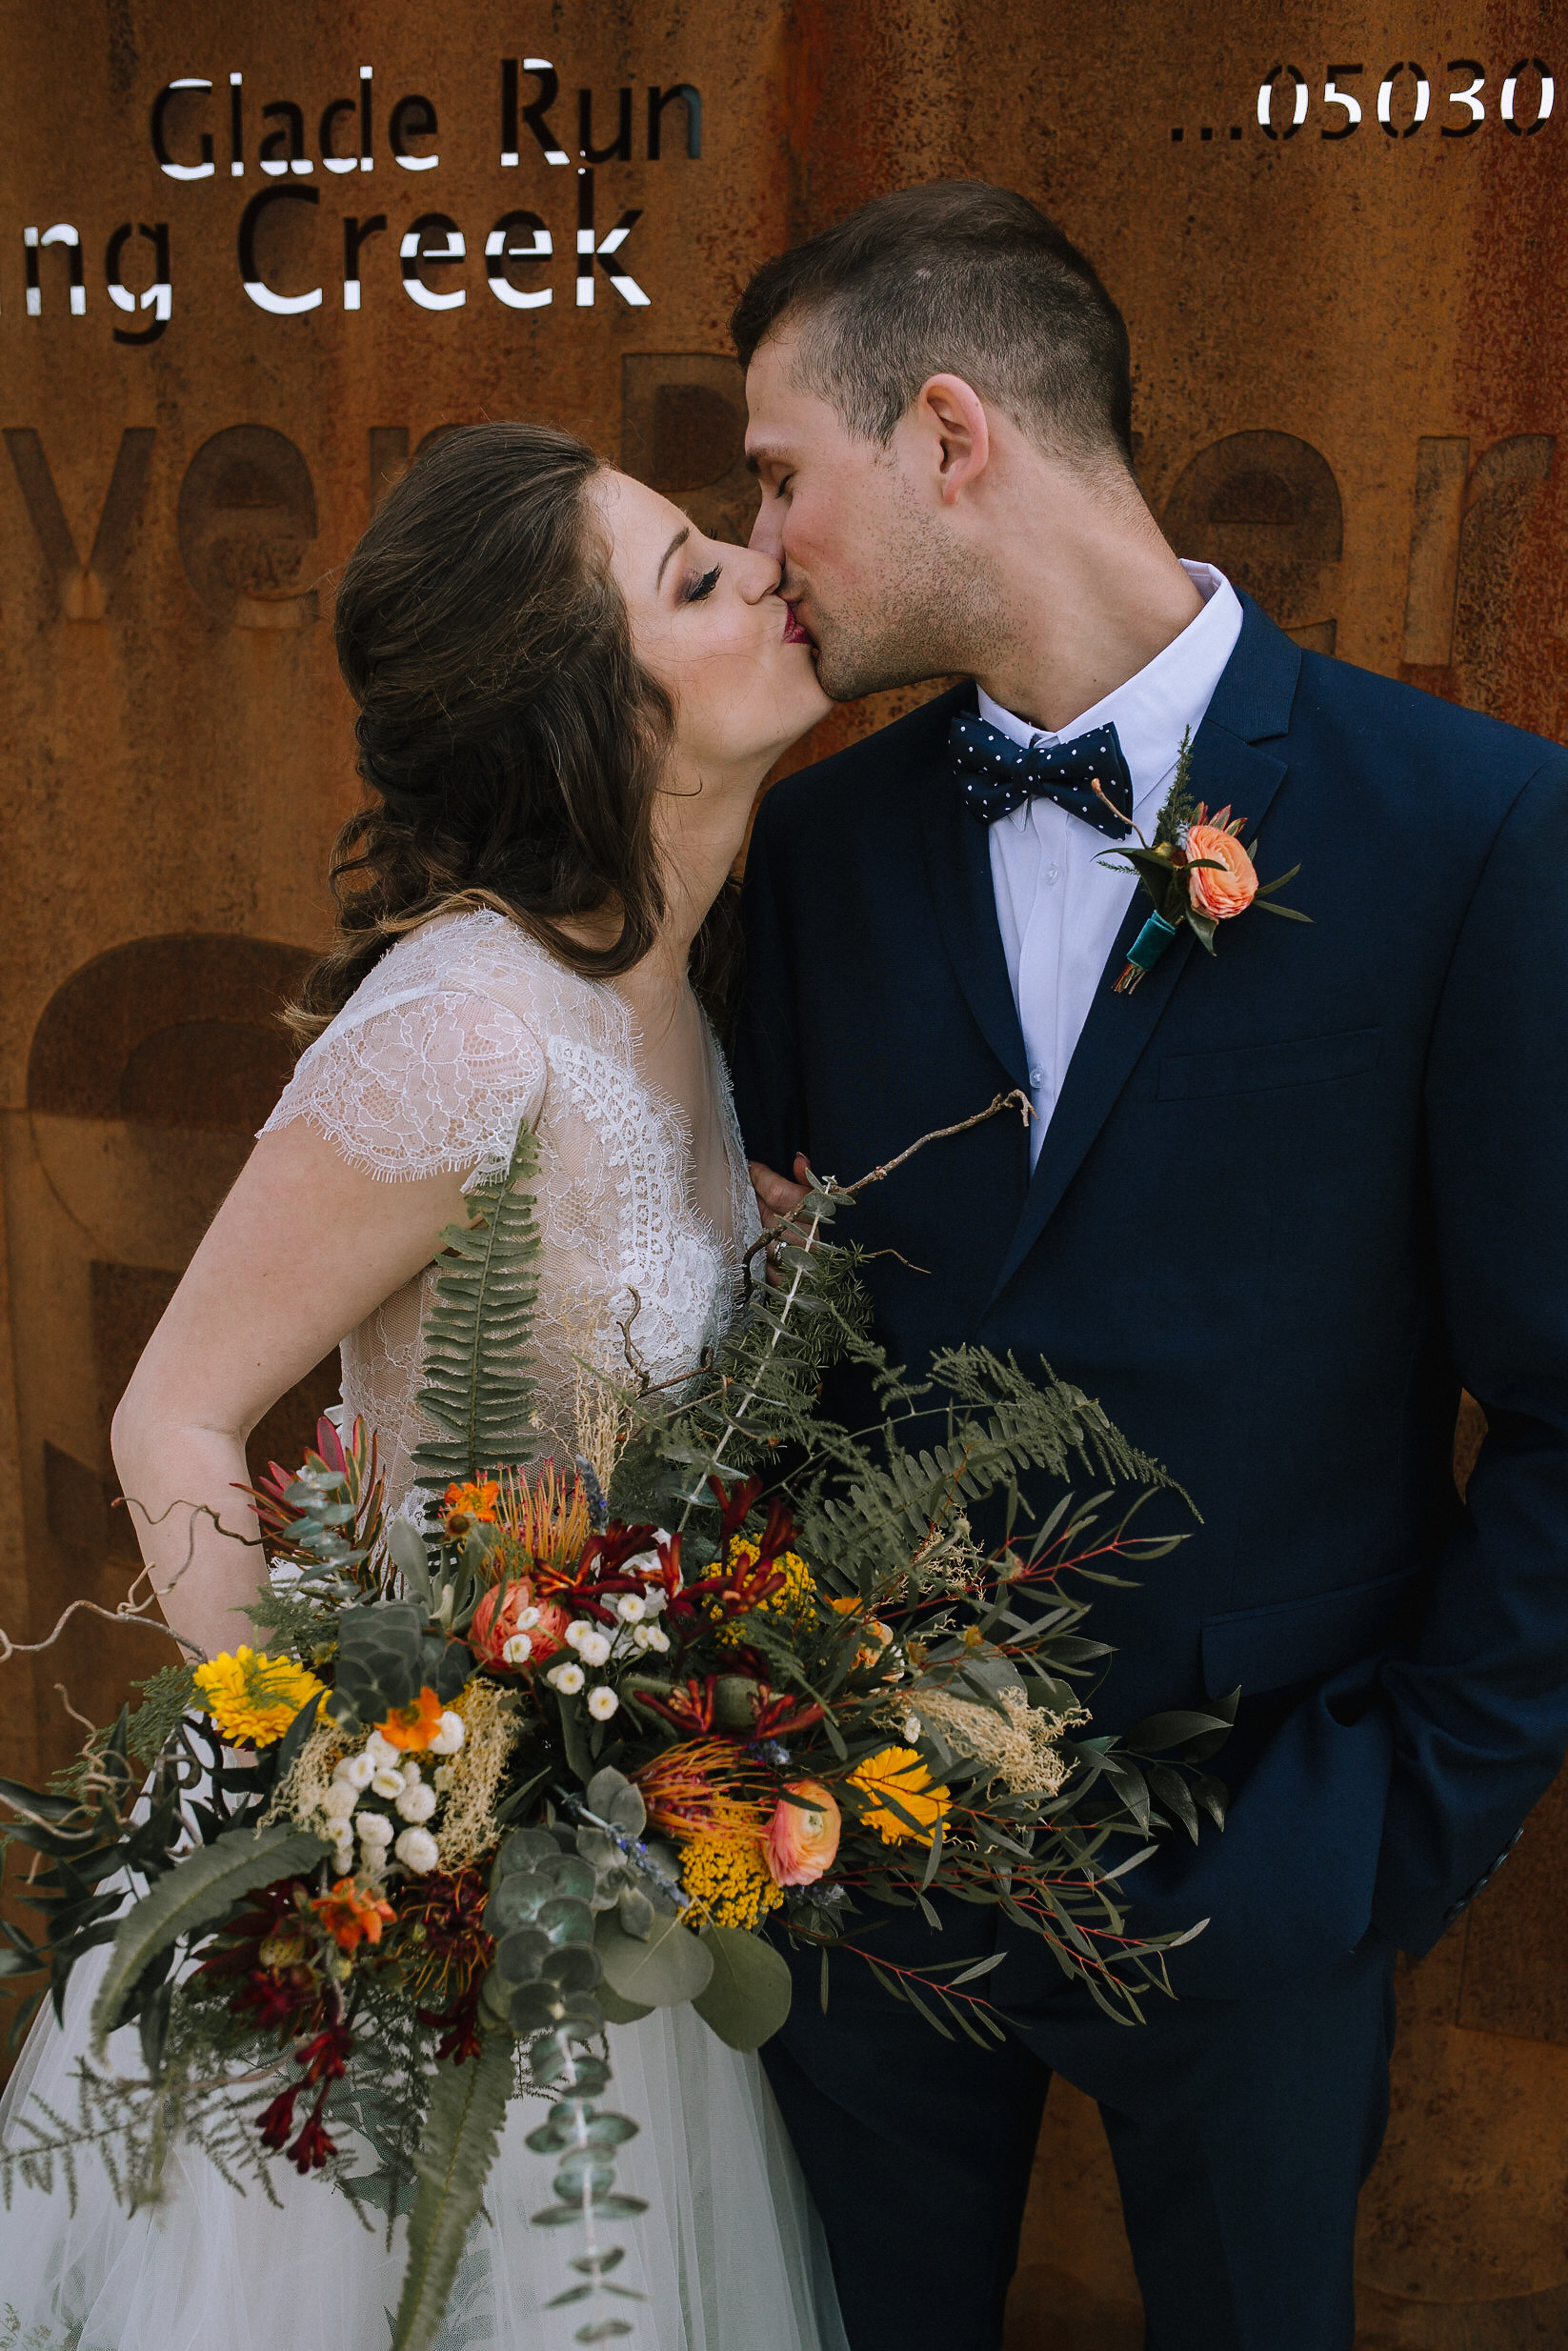 Boho bride and groom pose with wedding bouquet for fall vintage boho styled shoot designed by exhale events. Get inspired by these gorgeous wedding details at exhale-events.com!